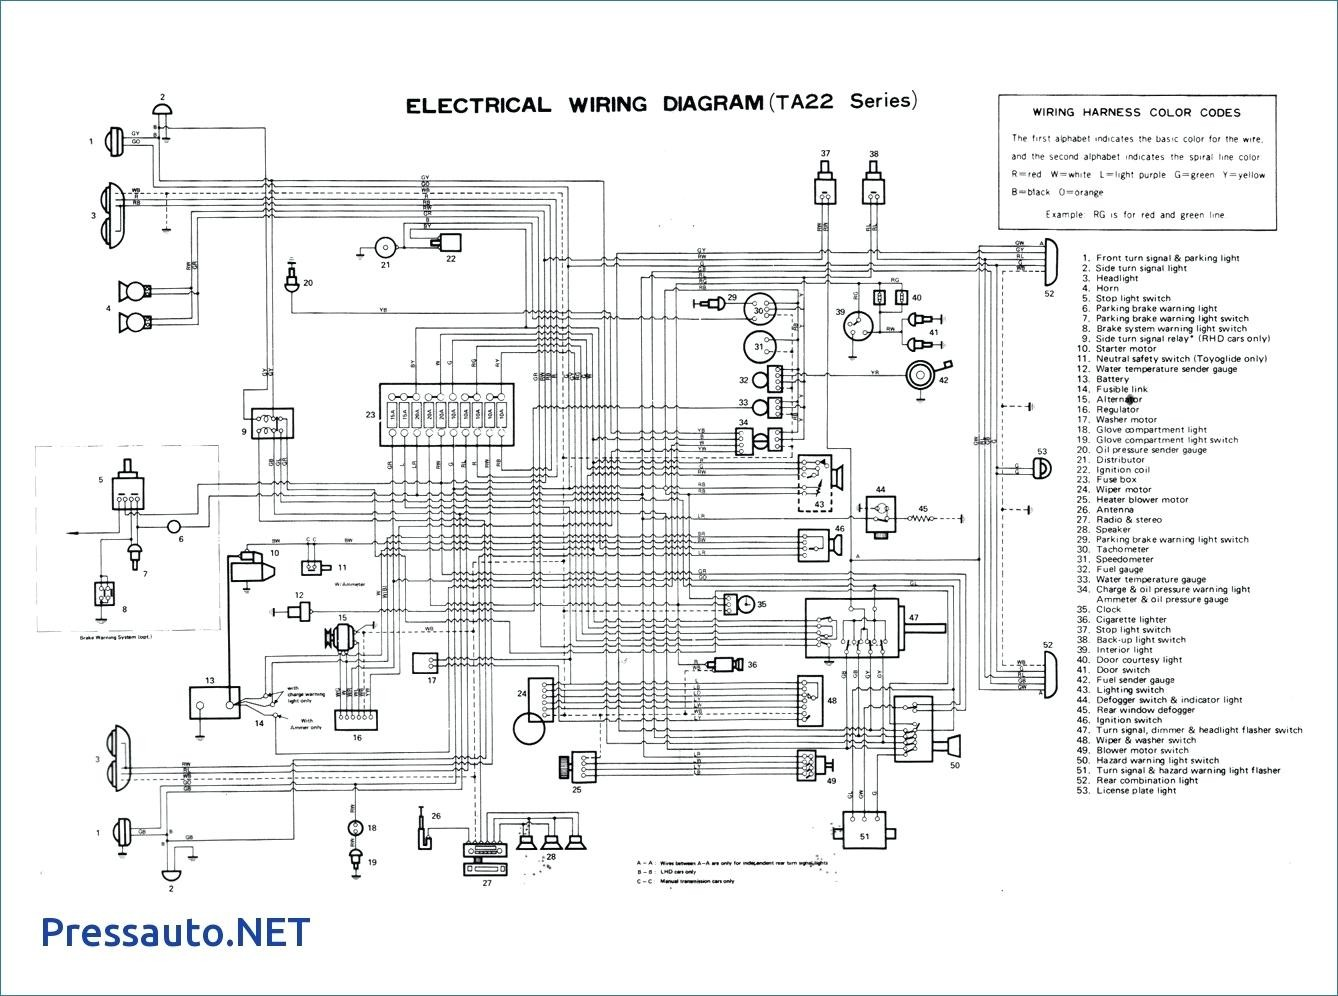 Deere Stx 38 Wiring Diagram Images - Example Electrical Circuit •